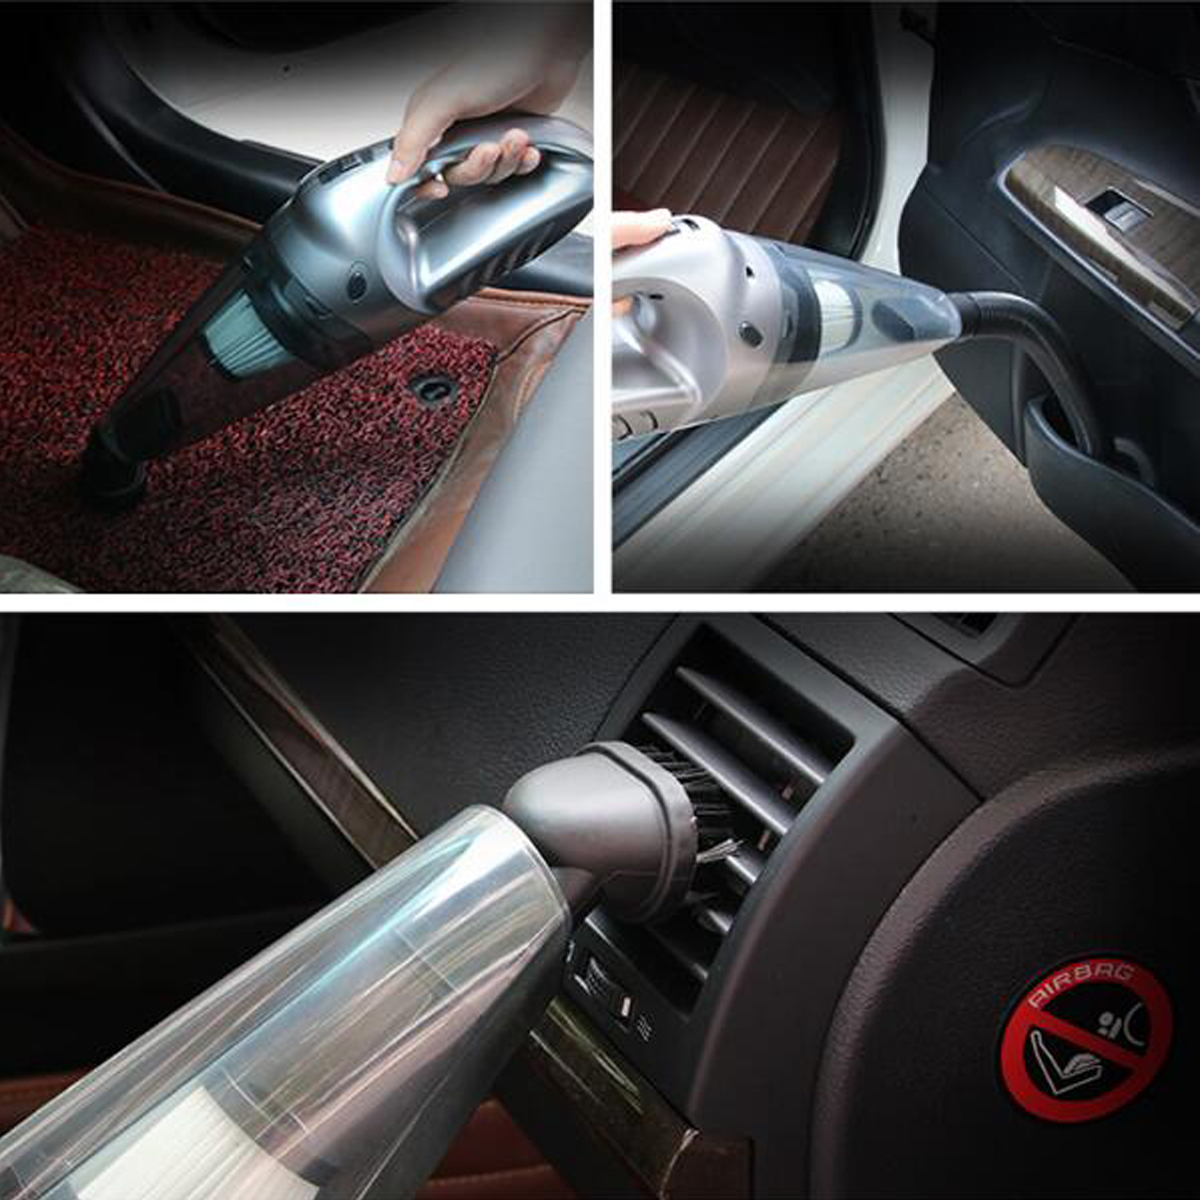 120W Portable Auto Car Handheld Vacuum Cleaner Duster Wet & Dry Dirt Suction with LED Light